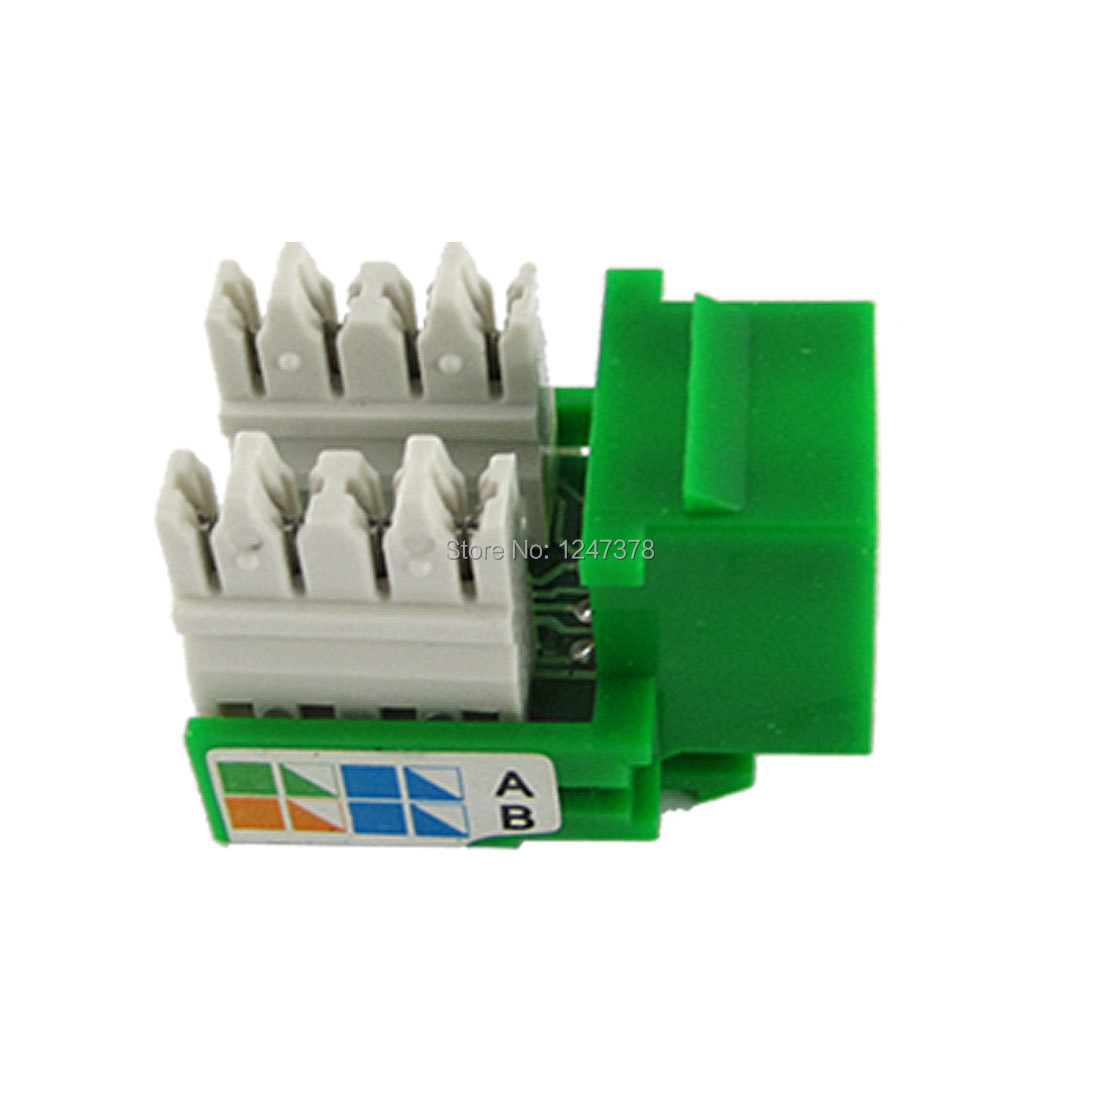 Network Computers Devices Connecting CAT5e Jack Green Discount 50(China (Mainland))